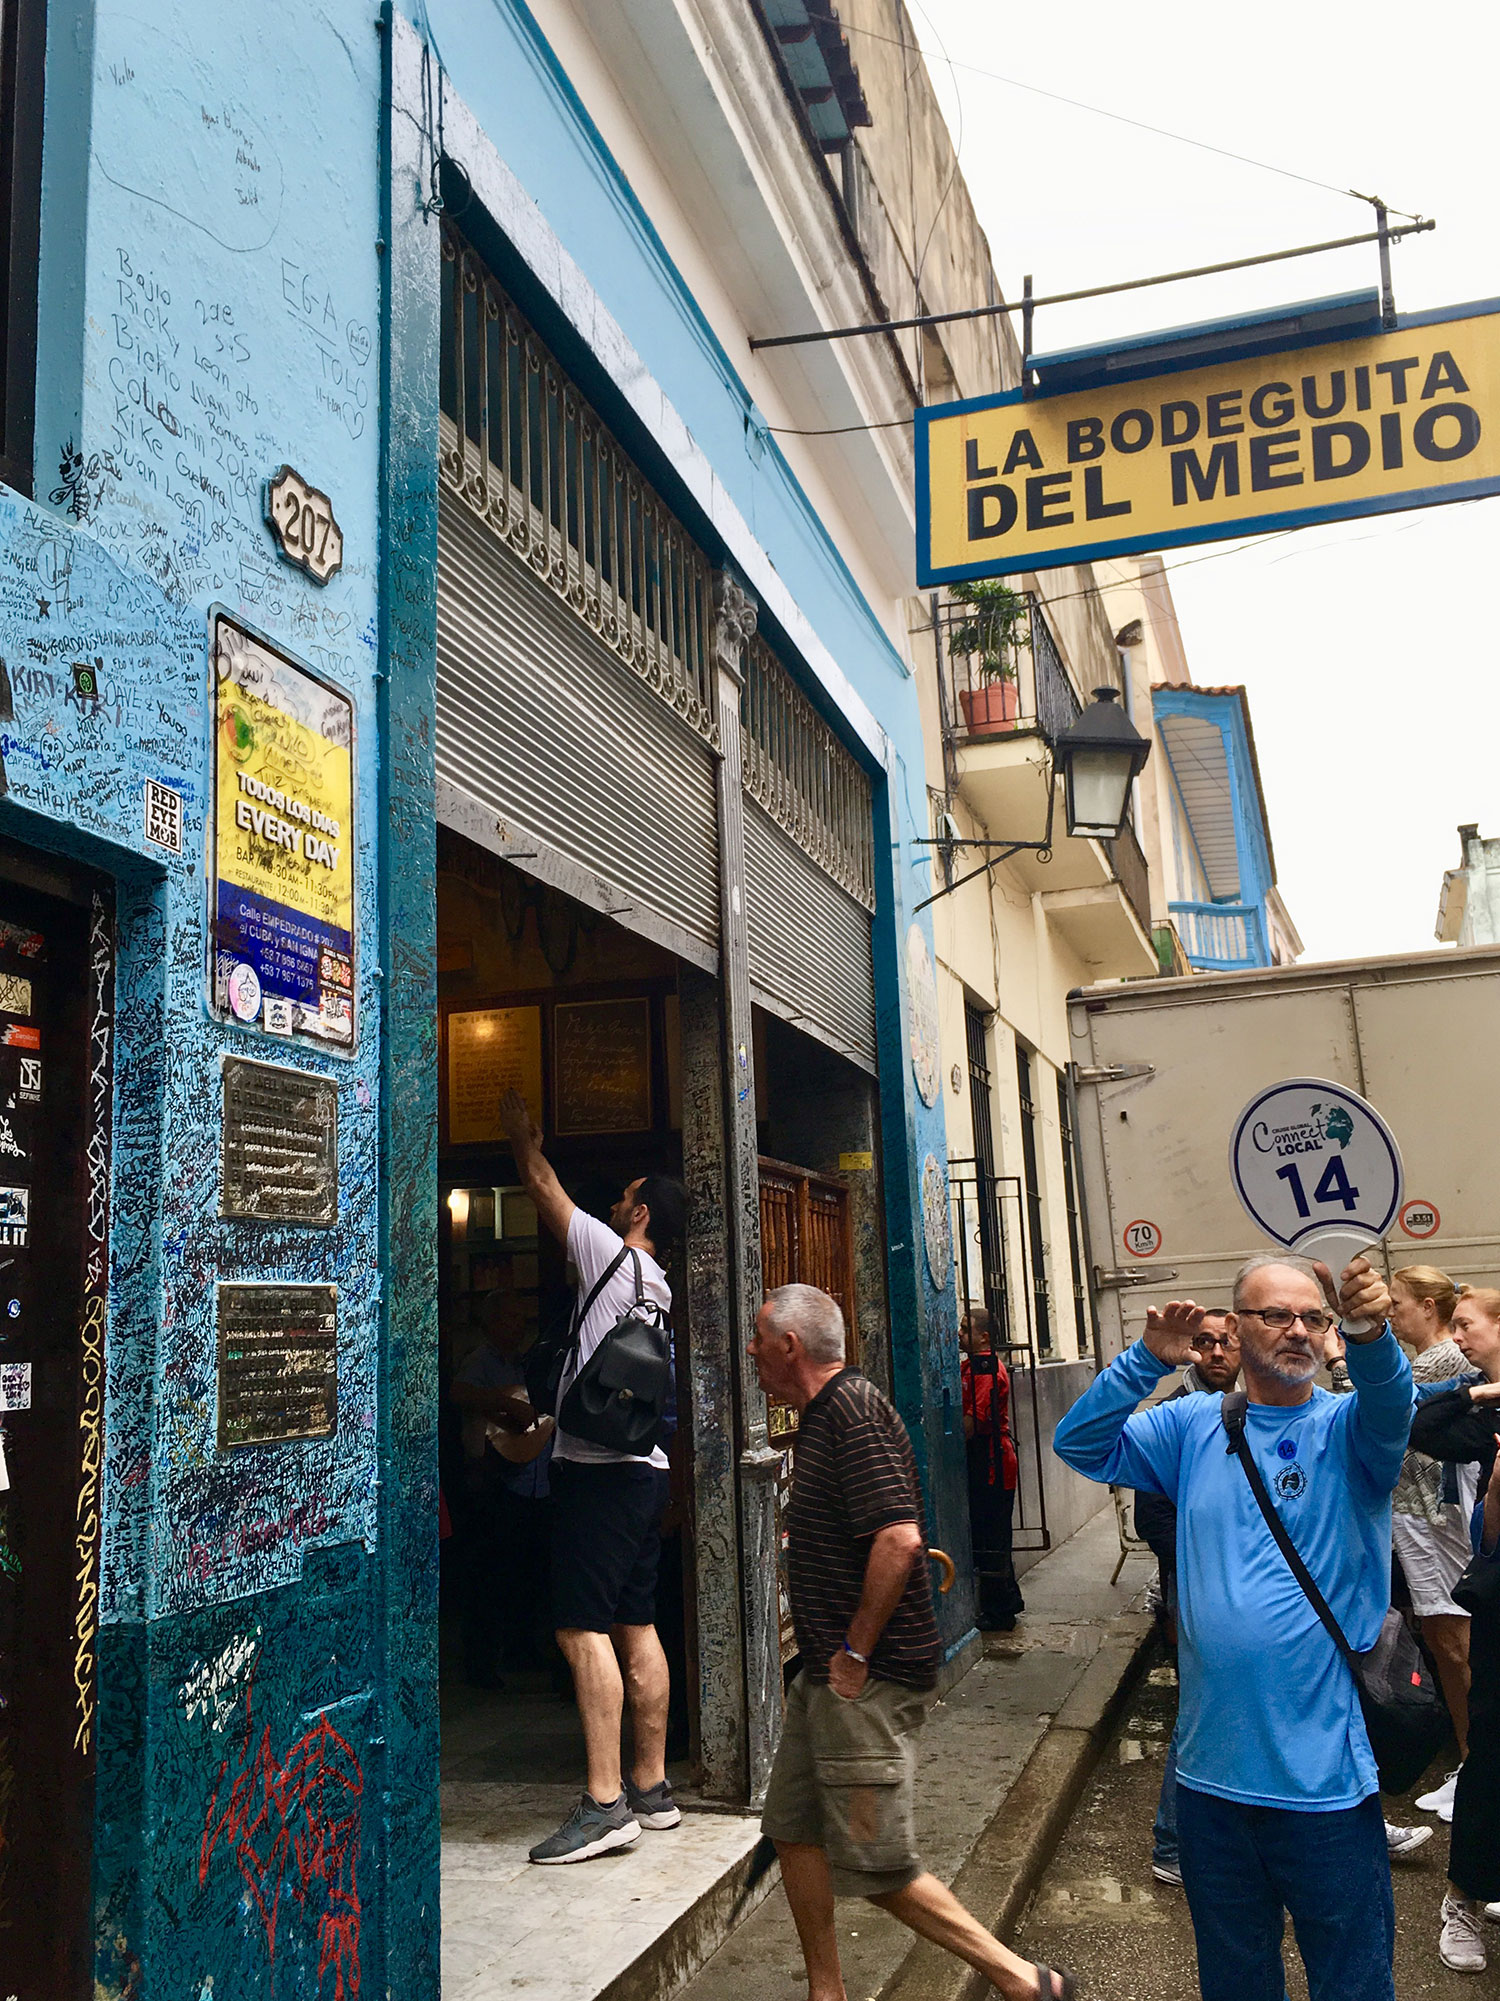 At La Bodeguita people were waiting outside for their turn.